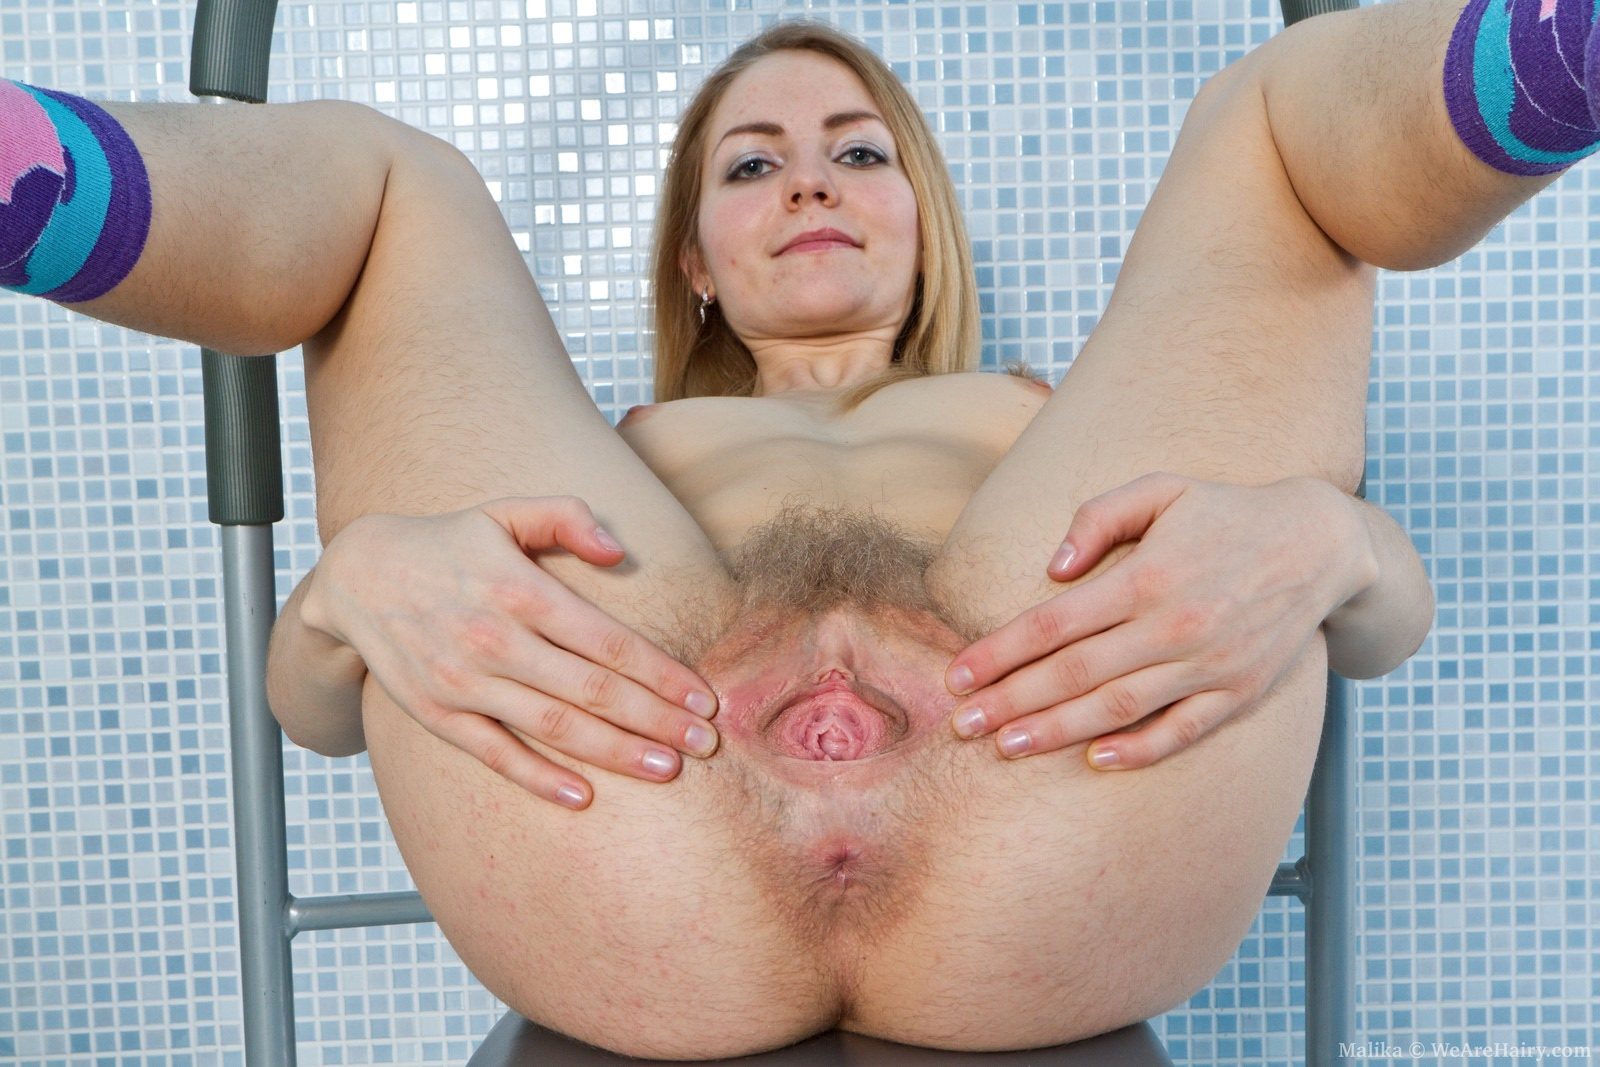 Teen pictures of breaking pussy sexy girl sex